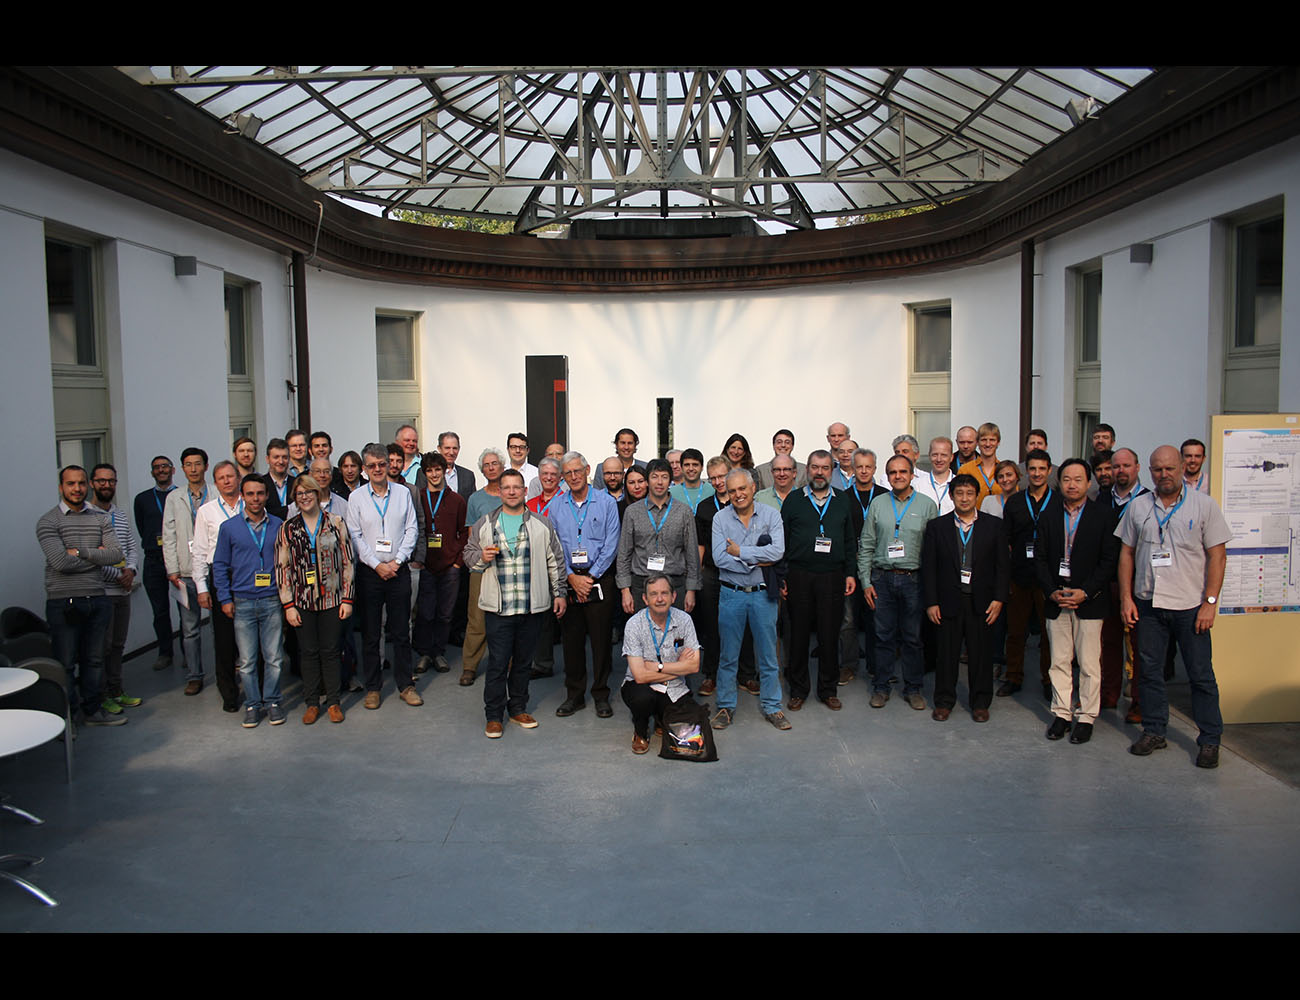 Dispersing Elements for Astronomy workshop, Milan, October 2017